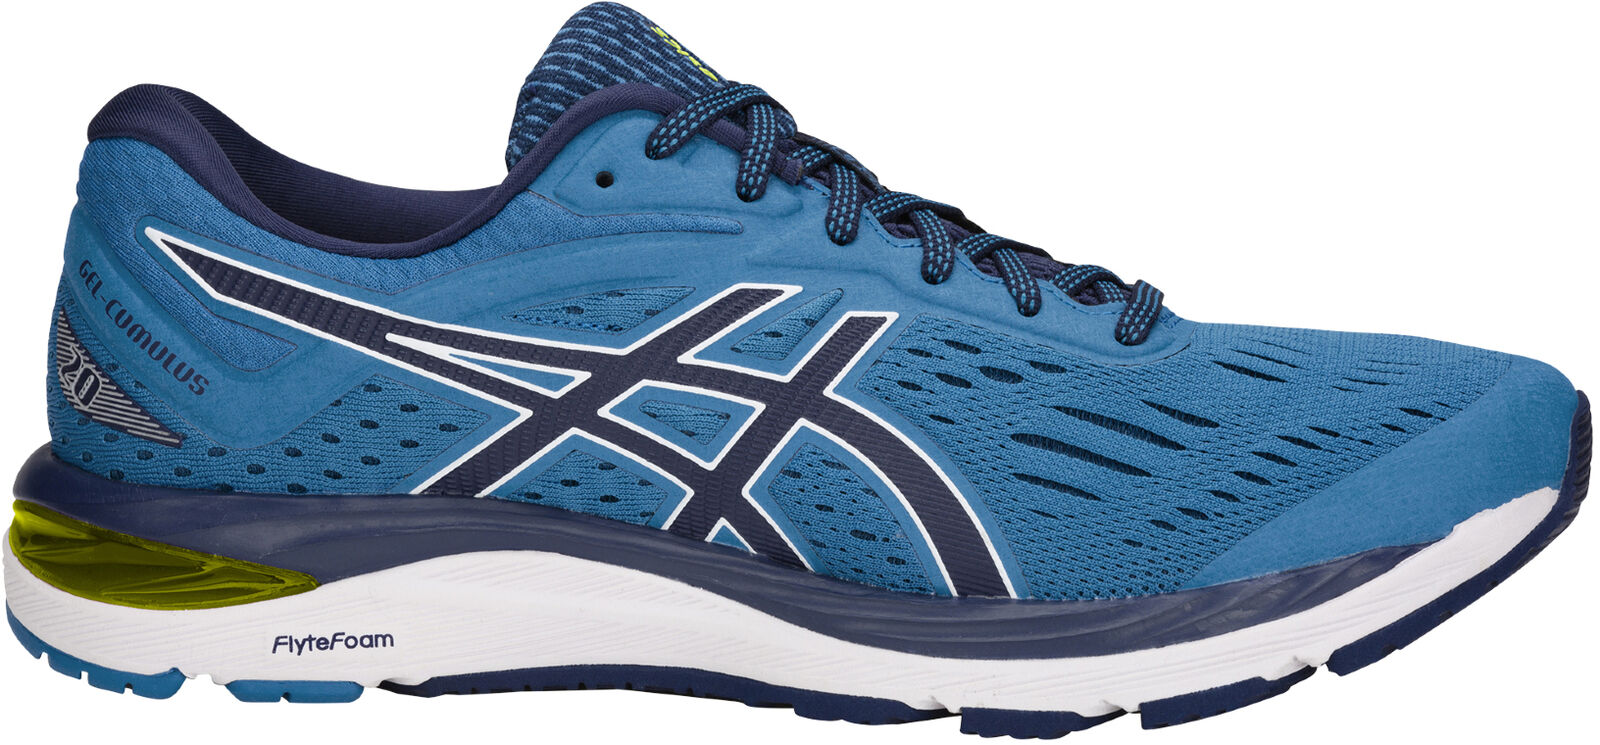 Asics Gel Cumulus 20 Mens Running shoes bluee Cushioned Trainers Sports Sneakers